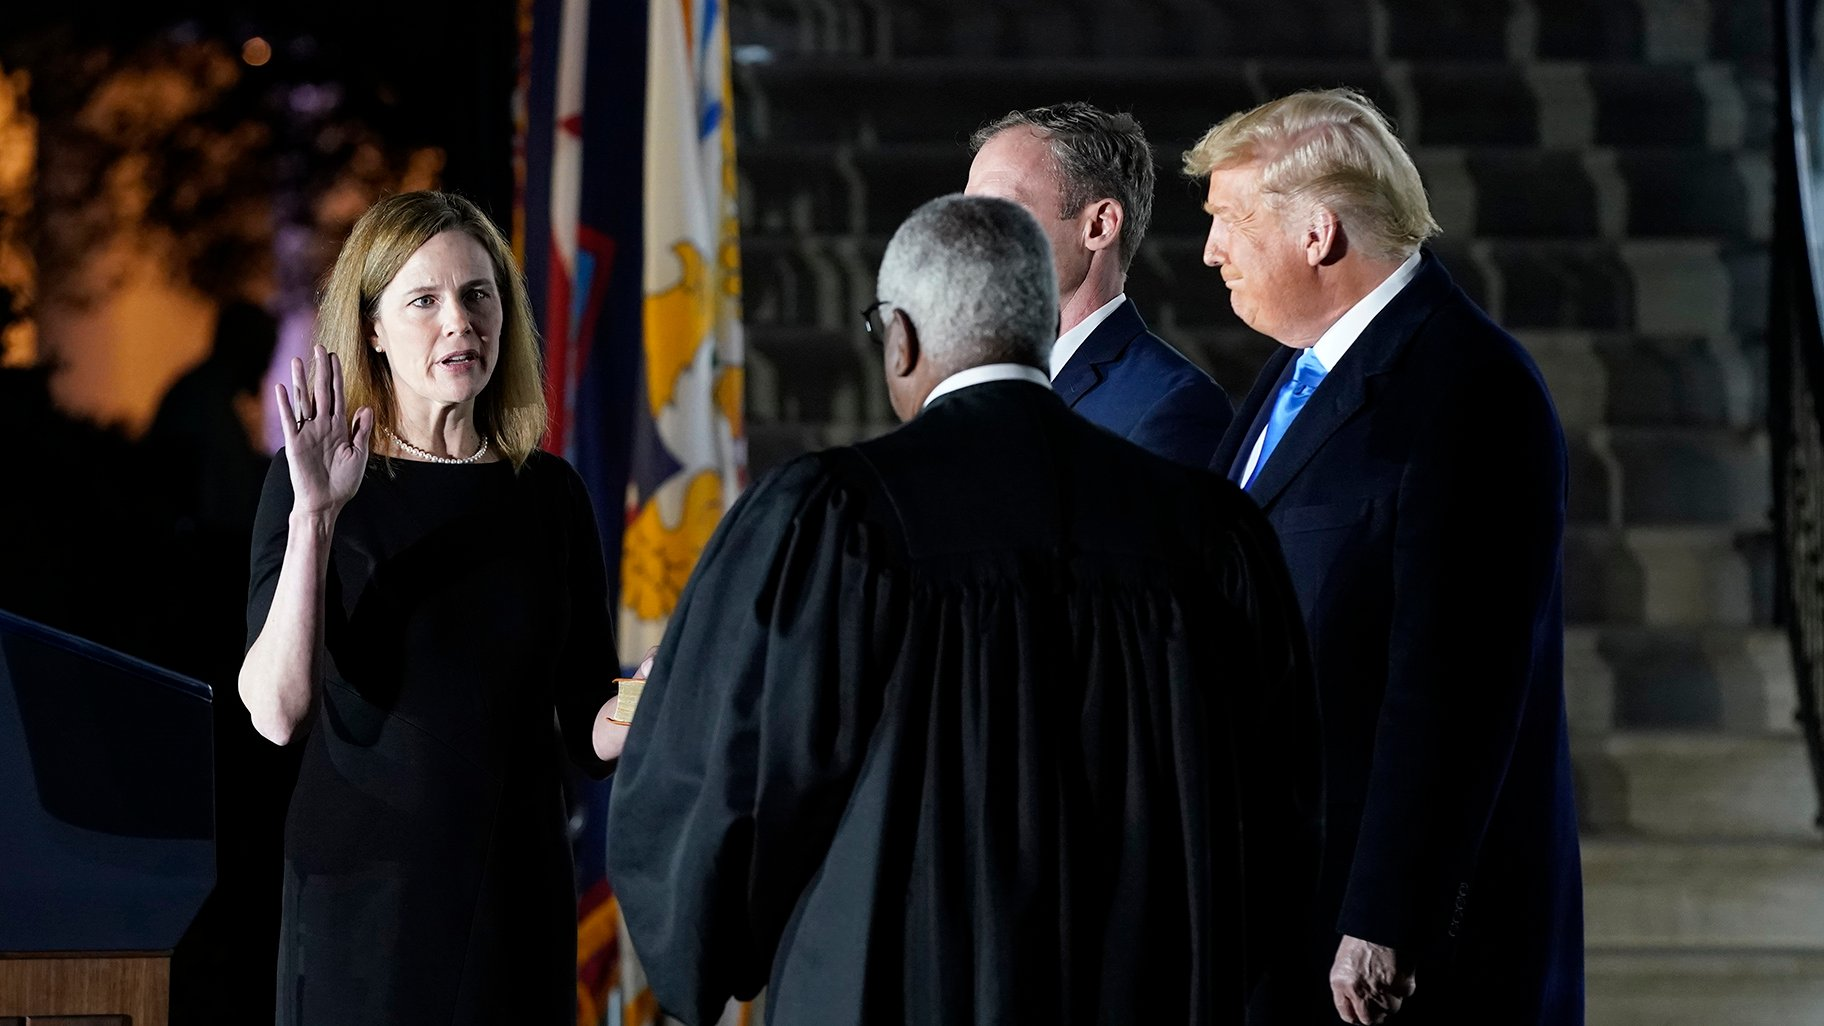 Amy Coney Barrett Confirmed As Supreme Court Justice In Partisan Vote Chicago News Wttw